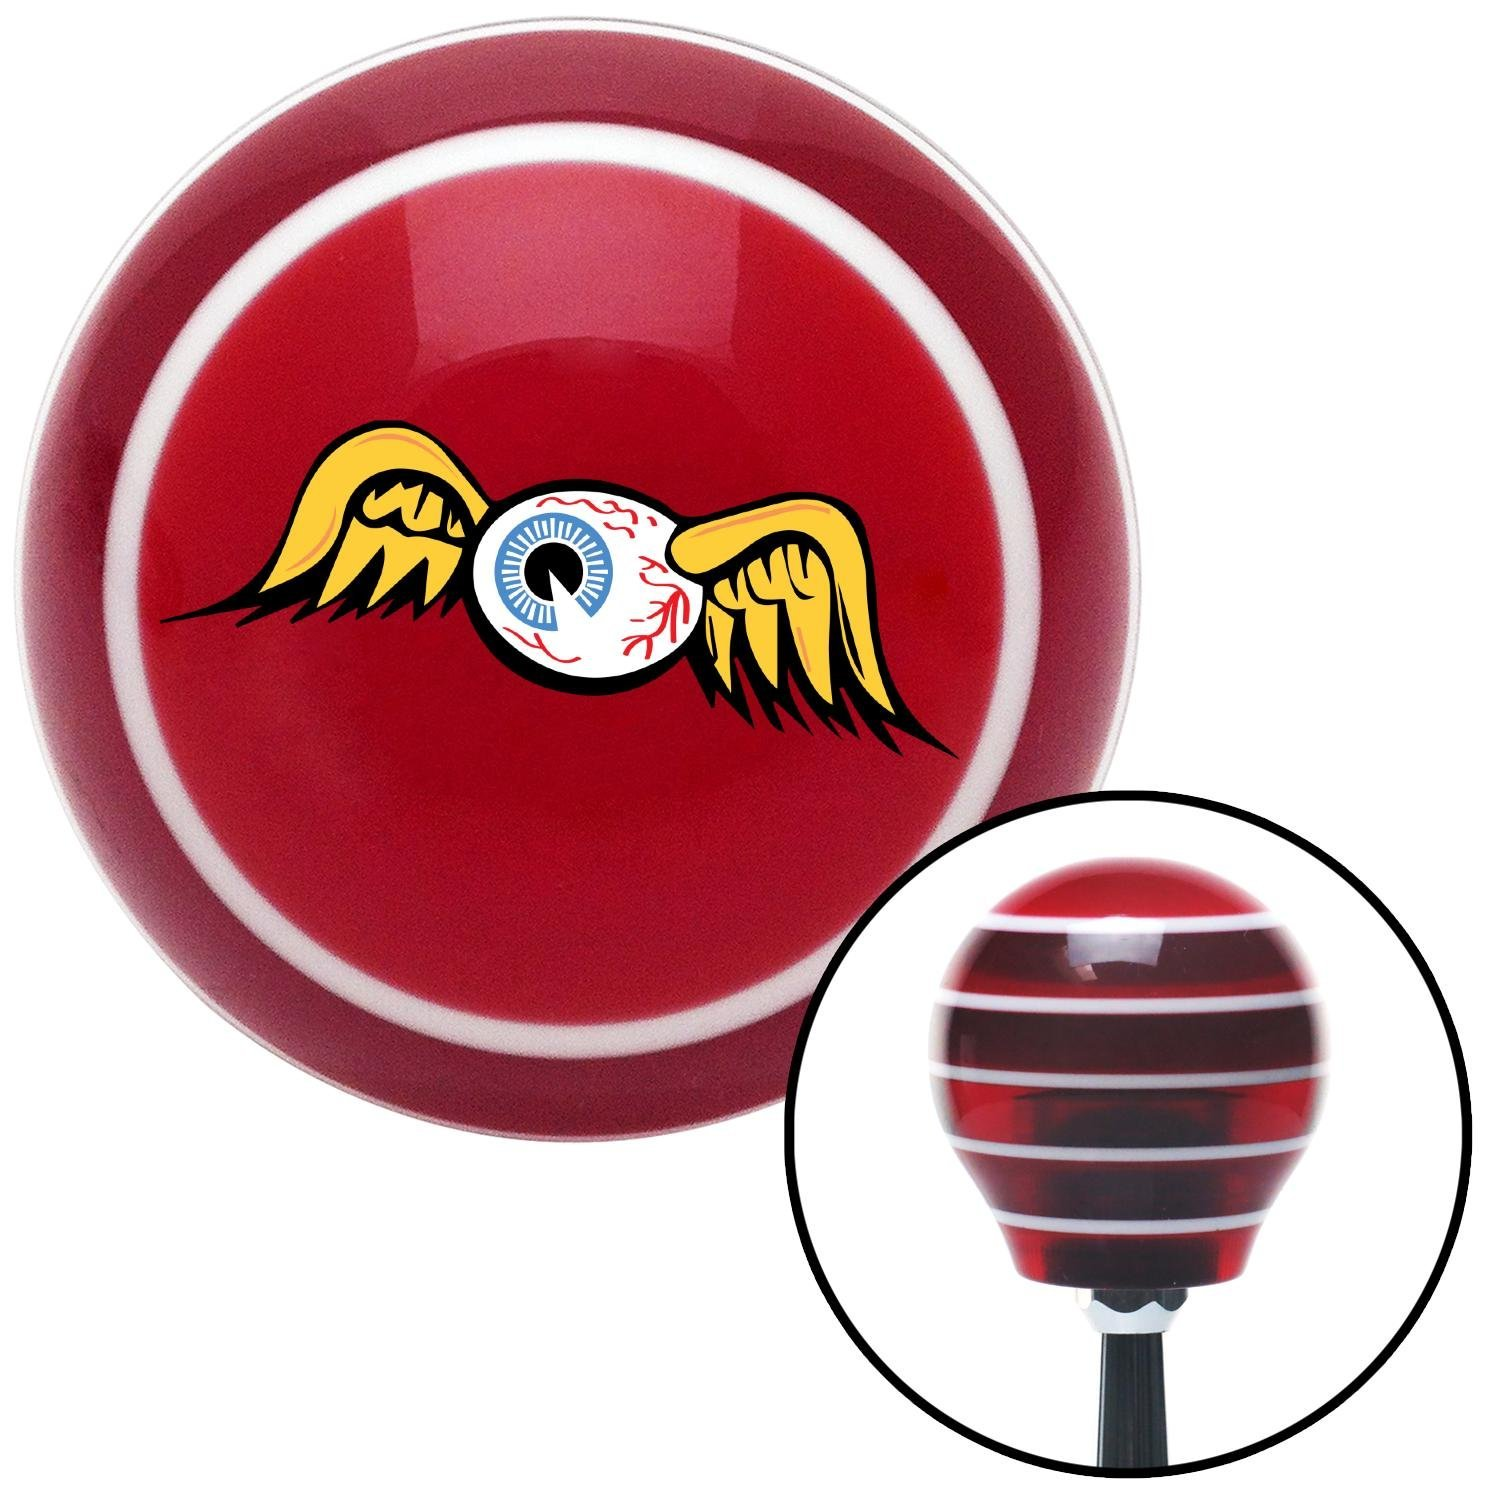 Flying Eyeball American Shifter 168526 Red Stripe Shift Knob with M16 x 1.5 Insert